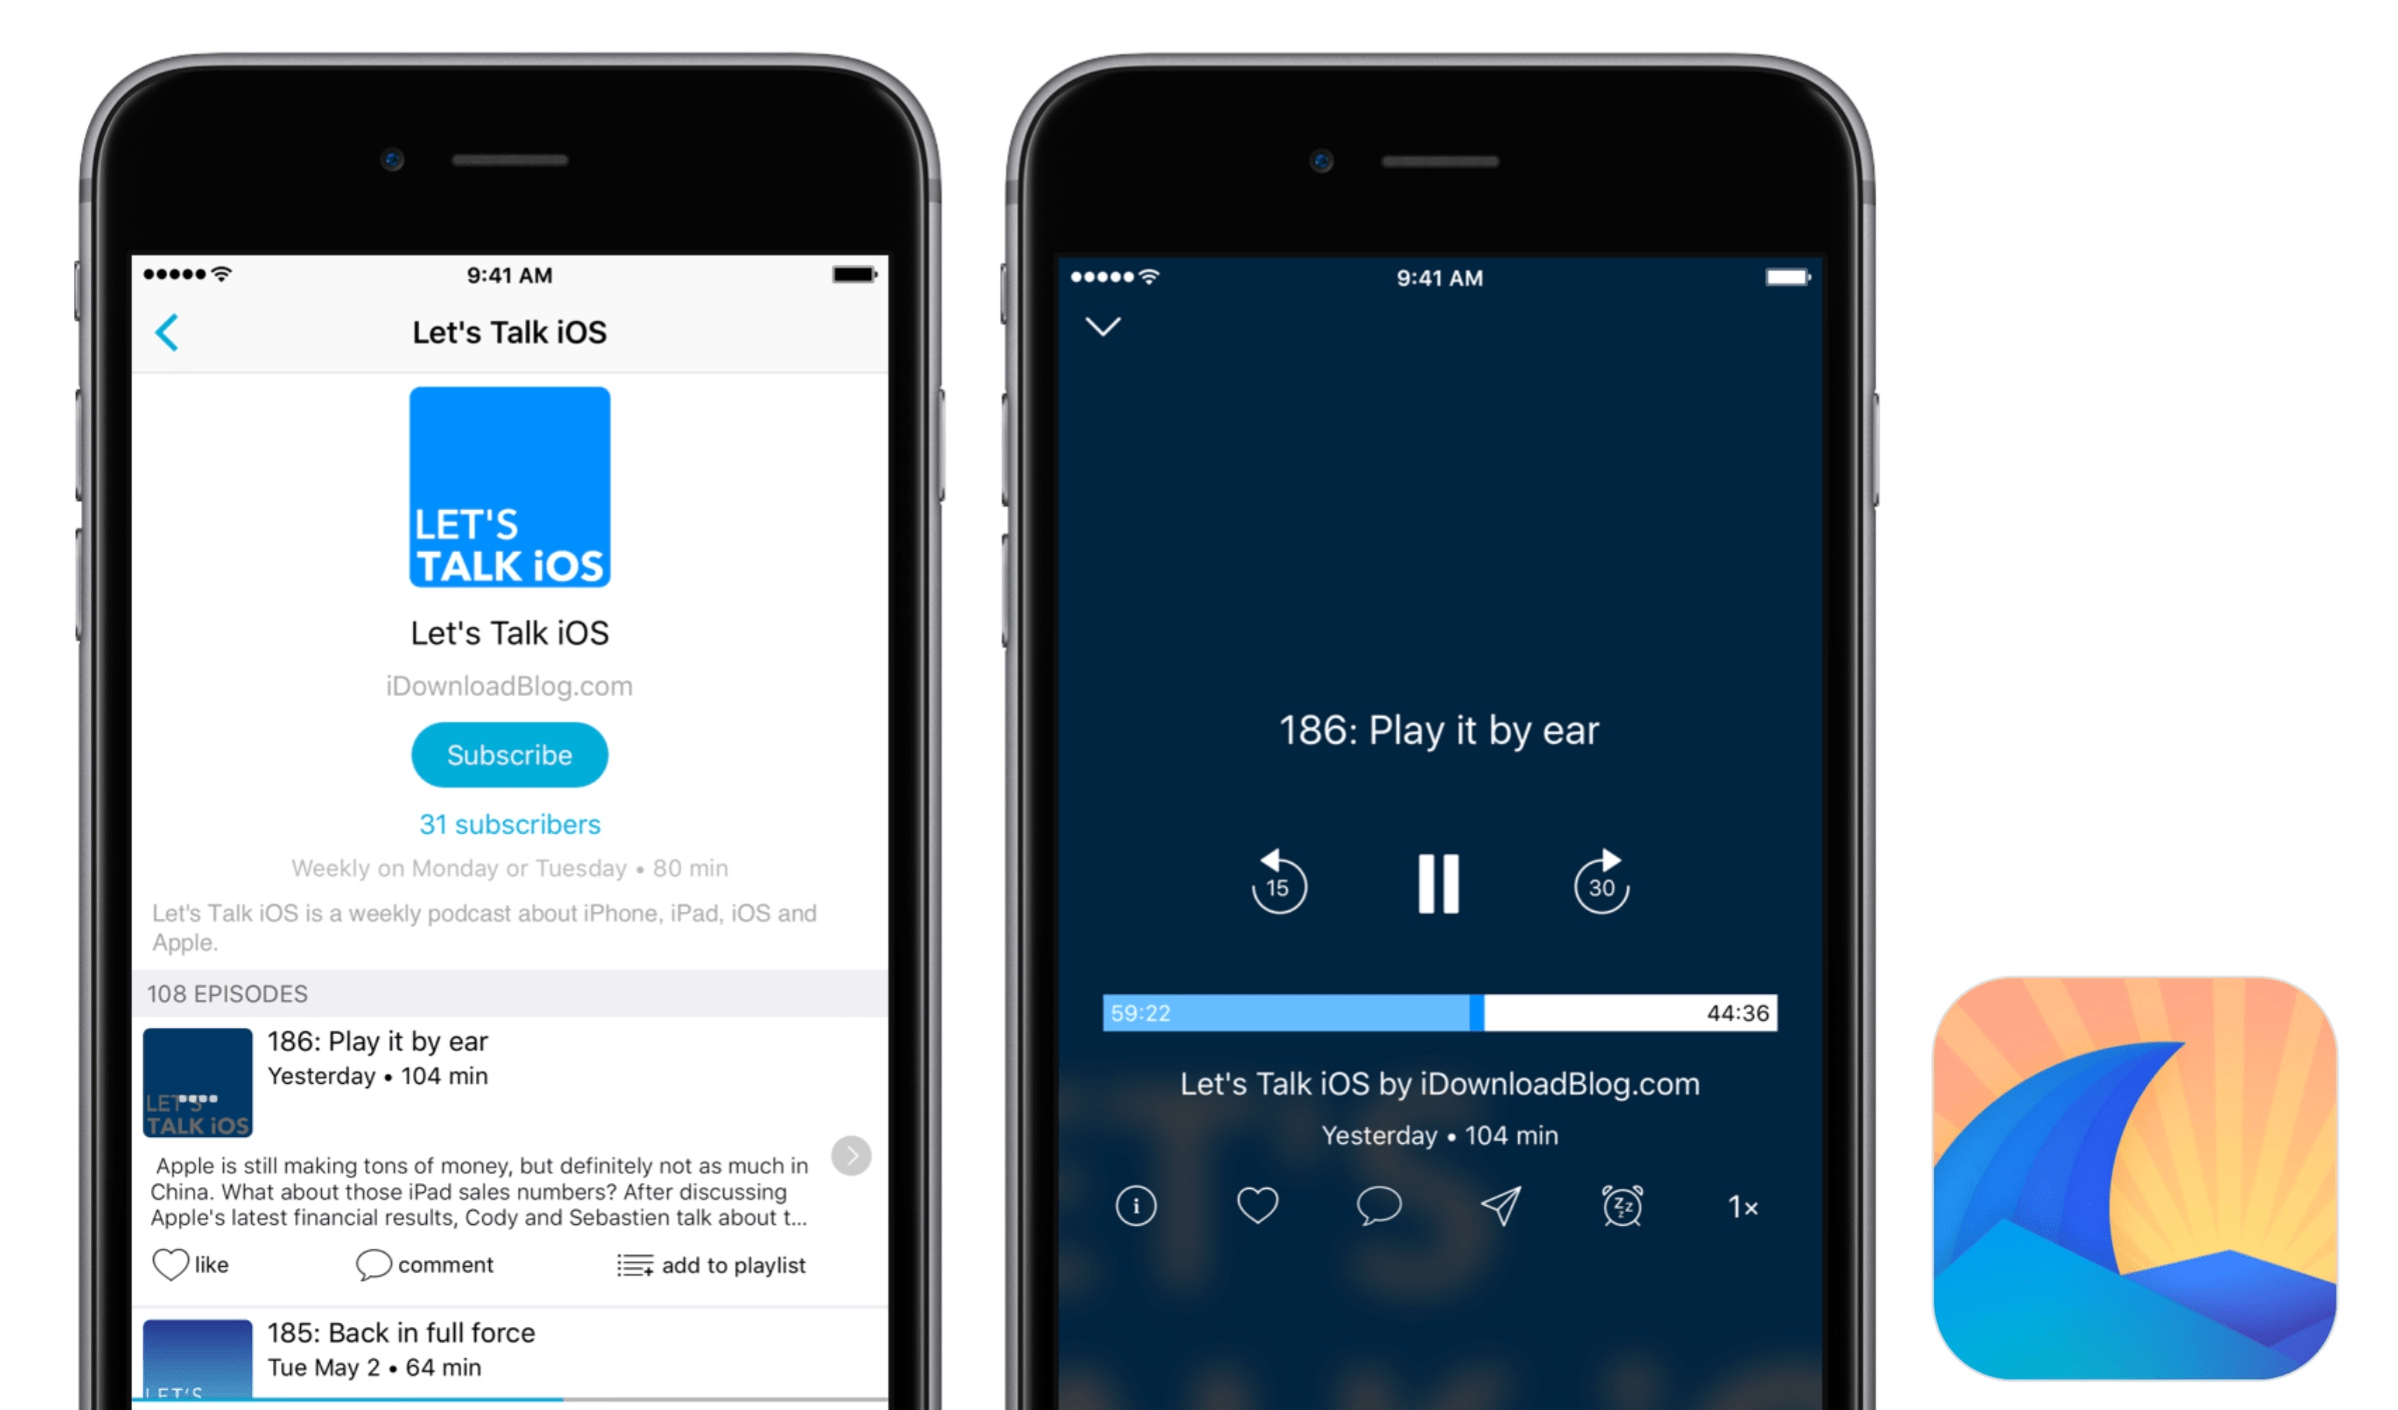 Twitter acquires Breaker podcast app to work on new projects